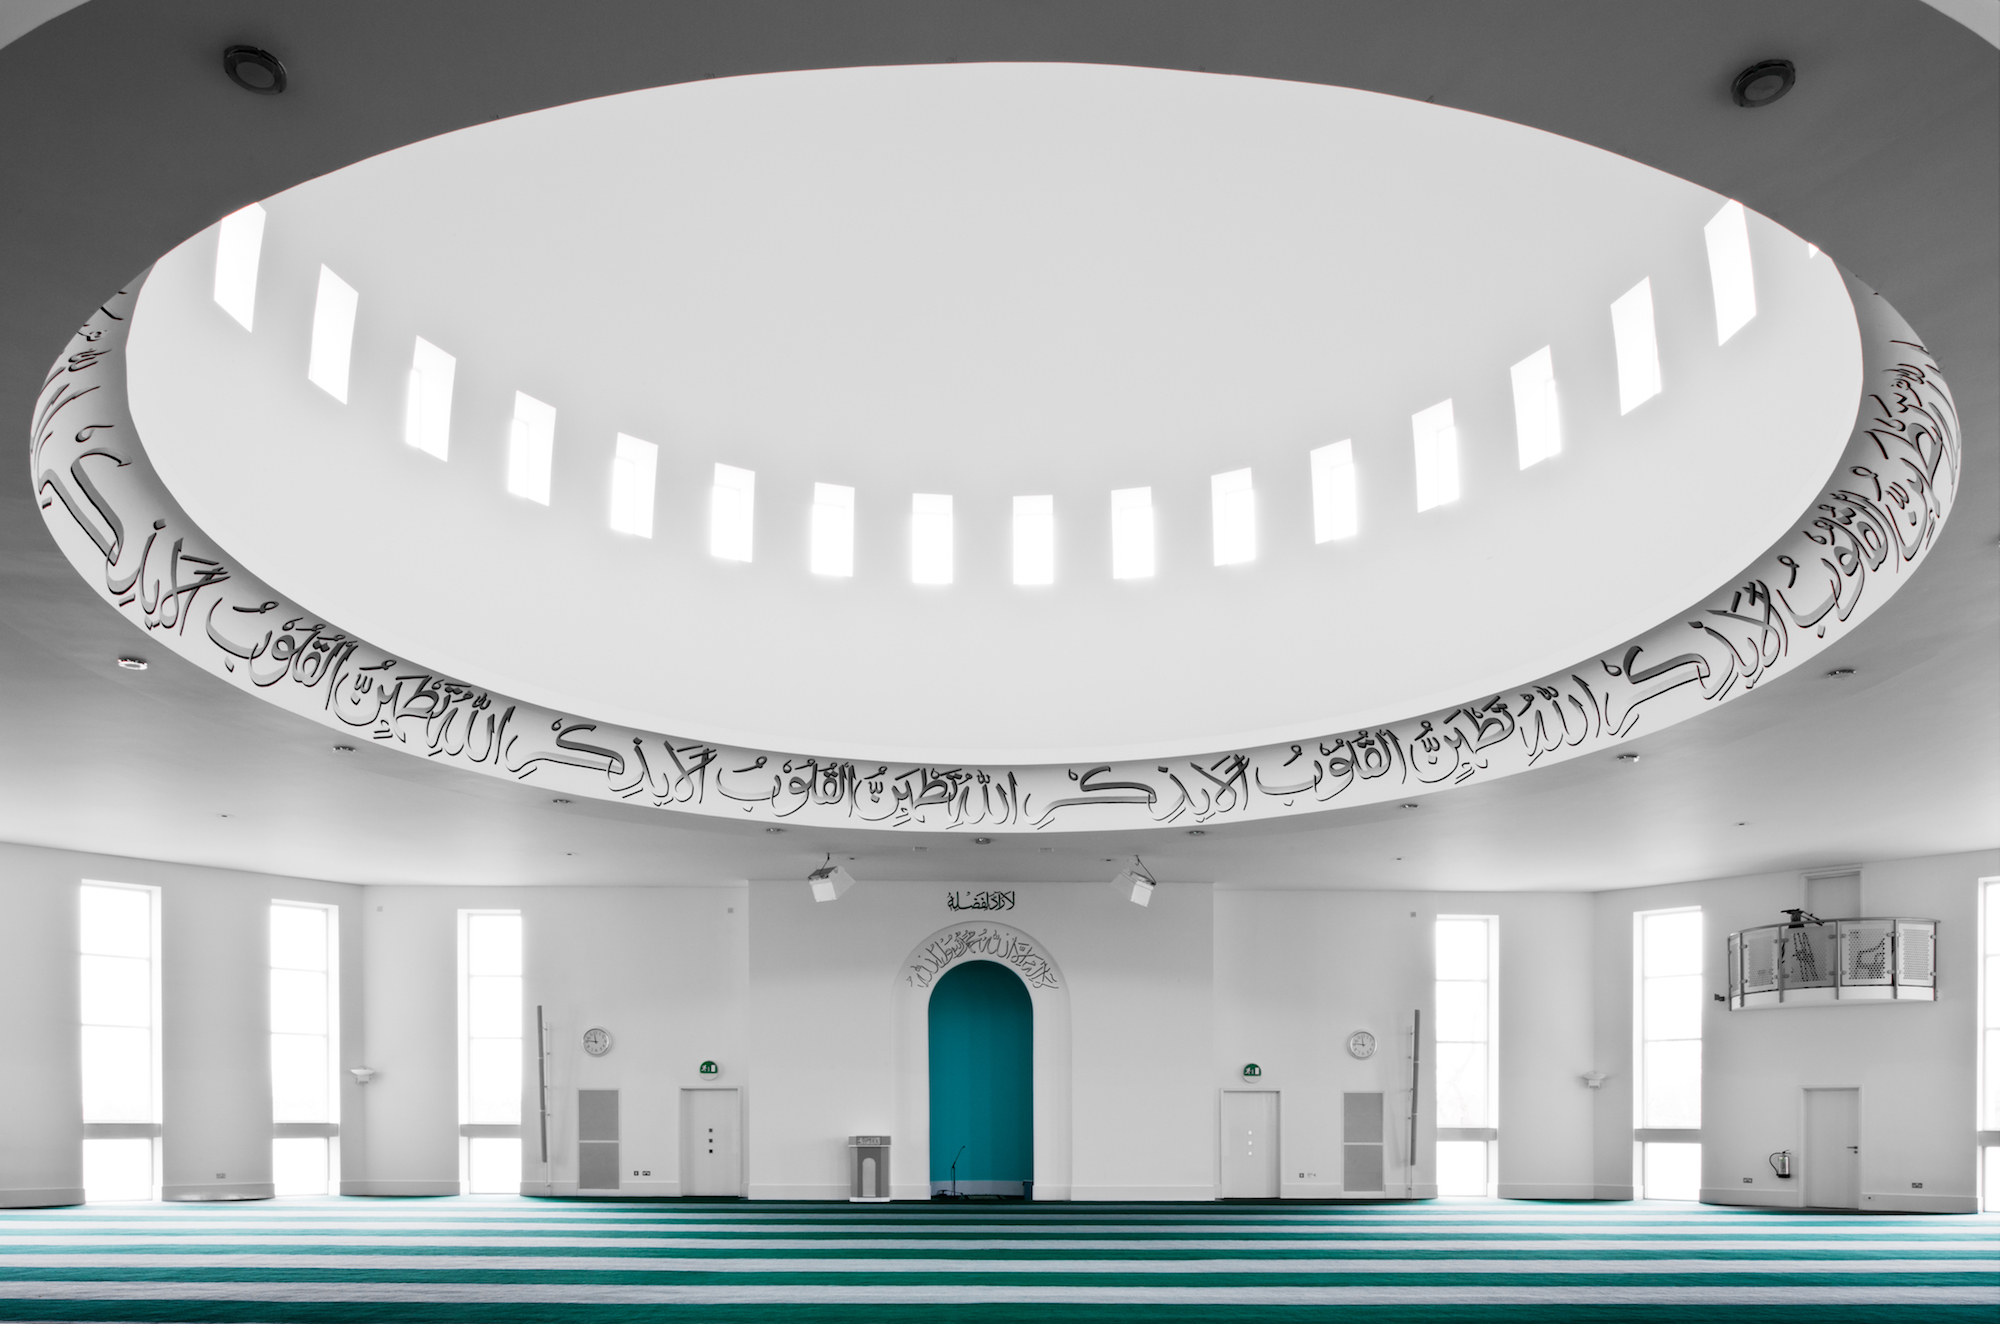 The interior of the Baitul Futuh Mosque is restrained and simple, with a large central dome and fl oor-toceiling windows.